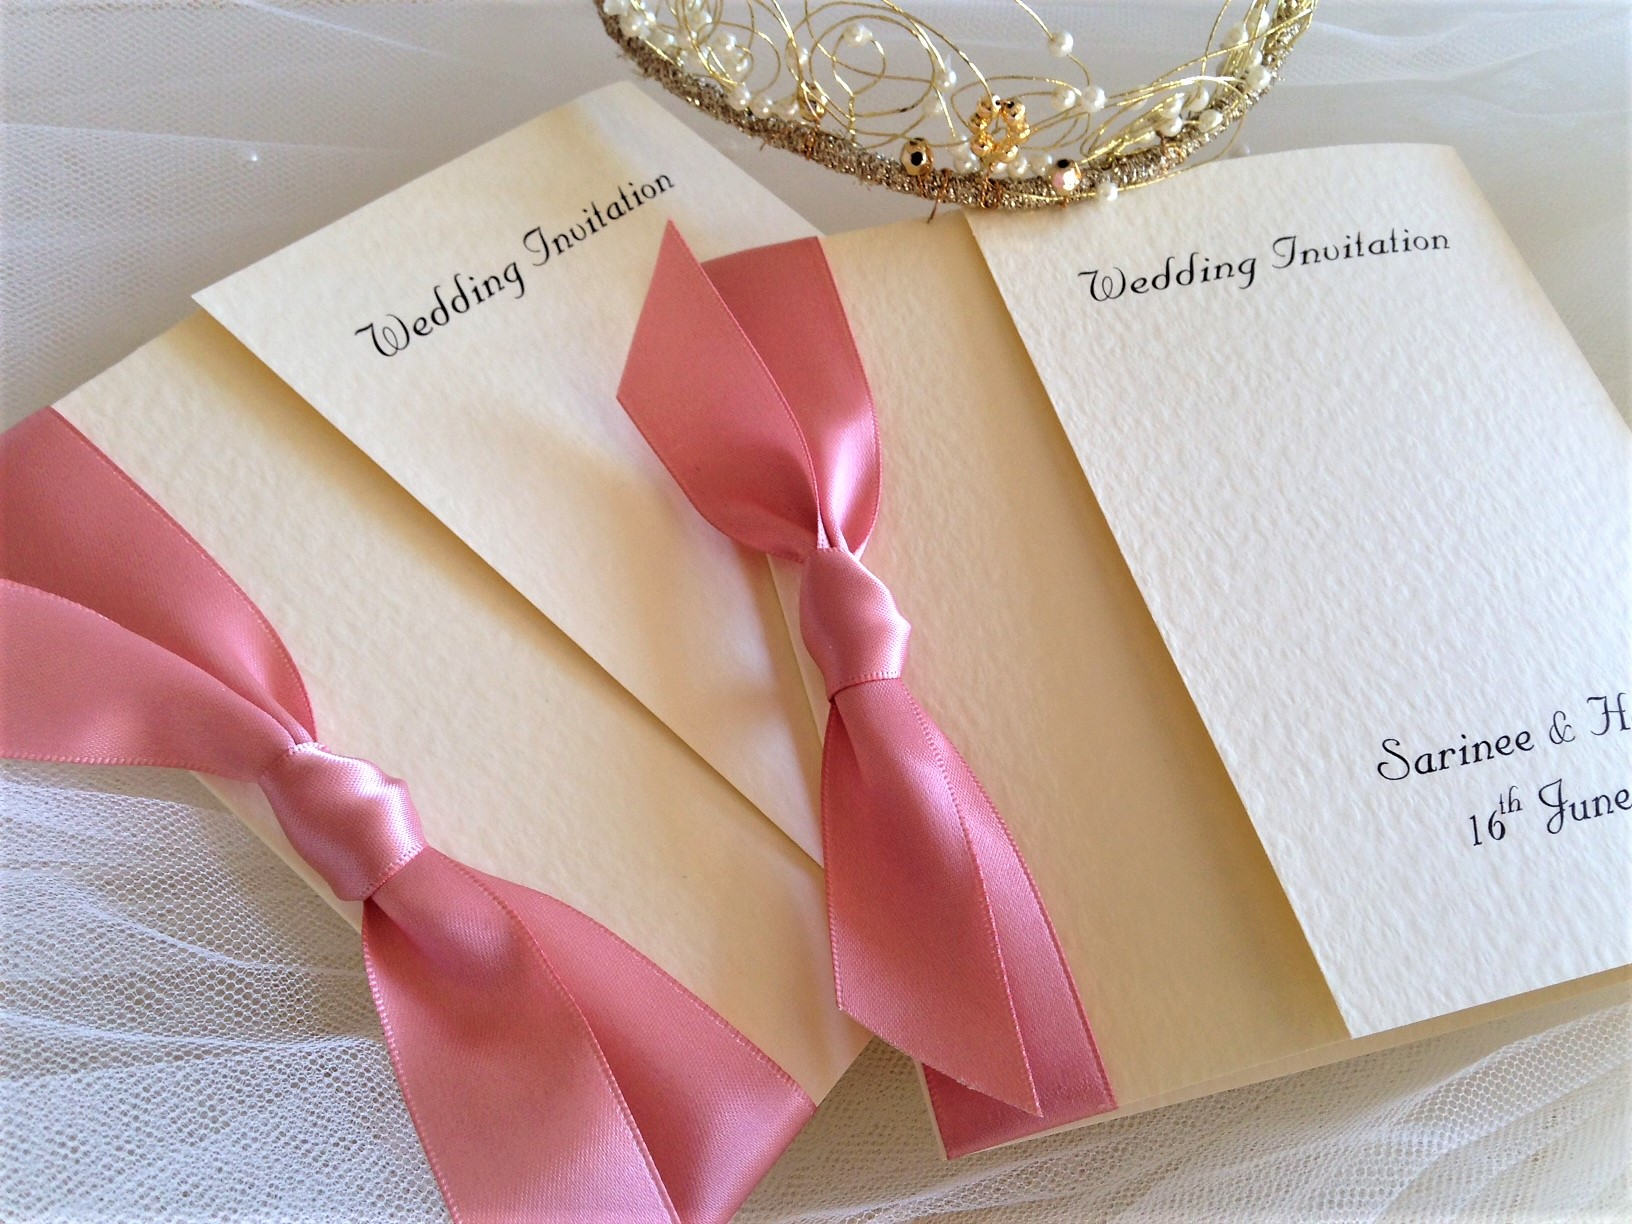 High quality images for additional information to include in wedding ...